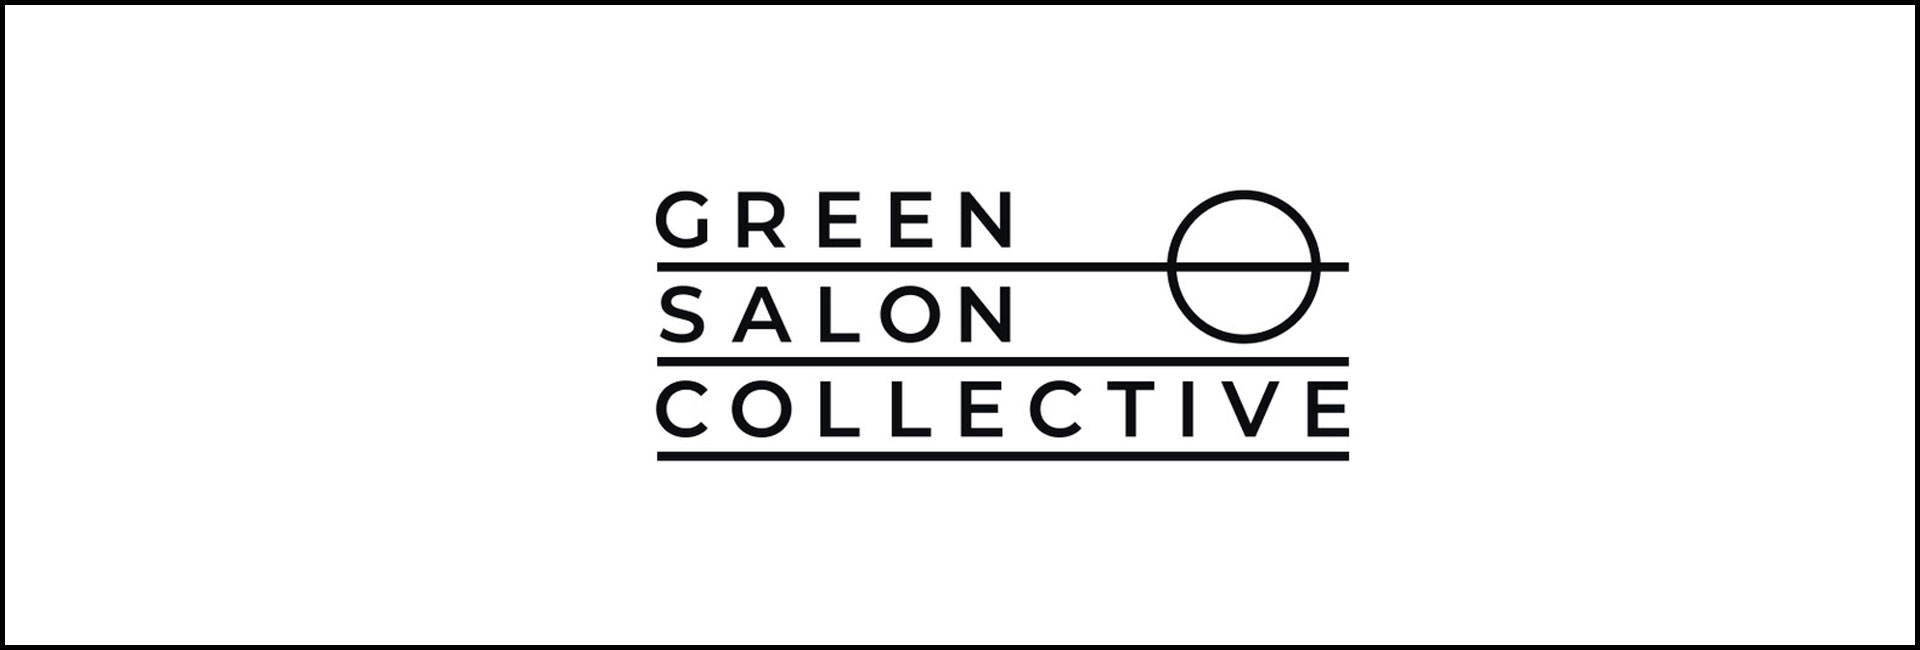 The green salon collective salons in Oxted